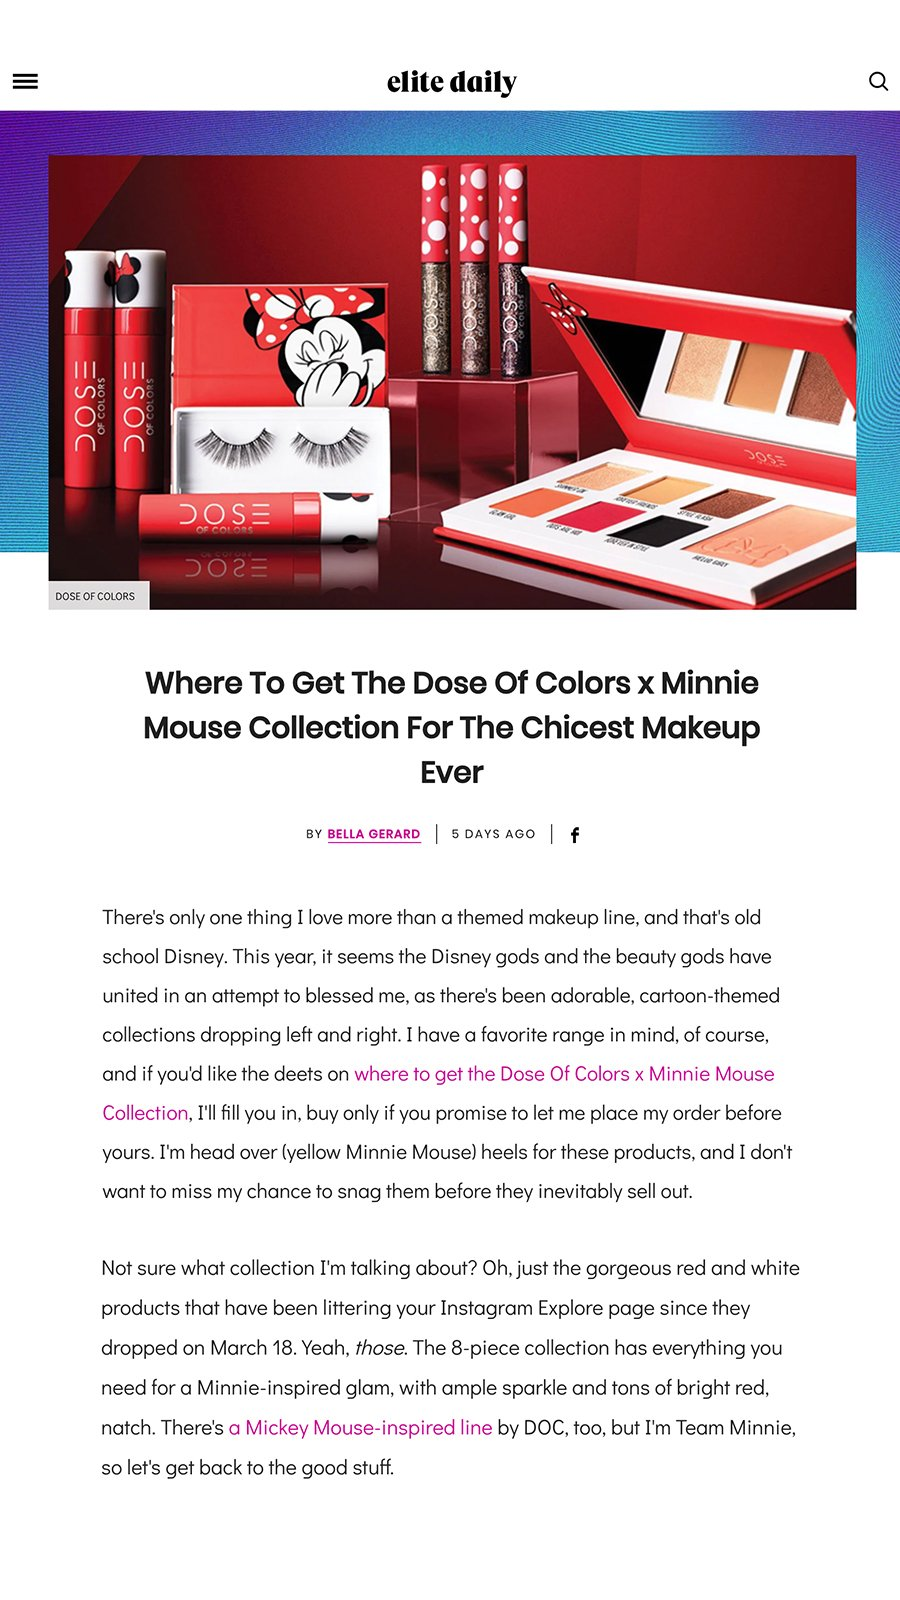 Elite Daily - Minnie Mouse x Dose of Colors Collection